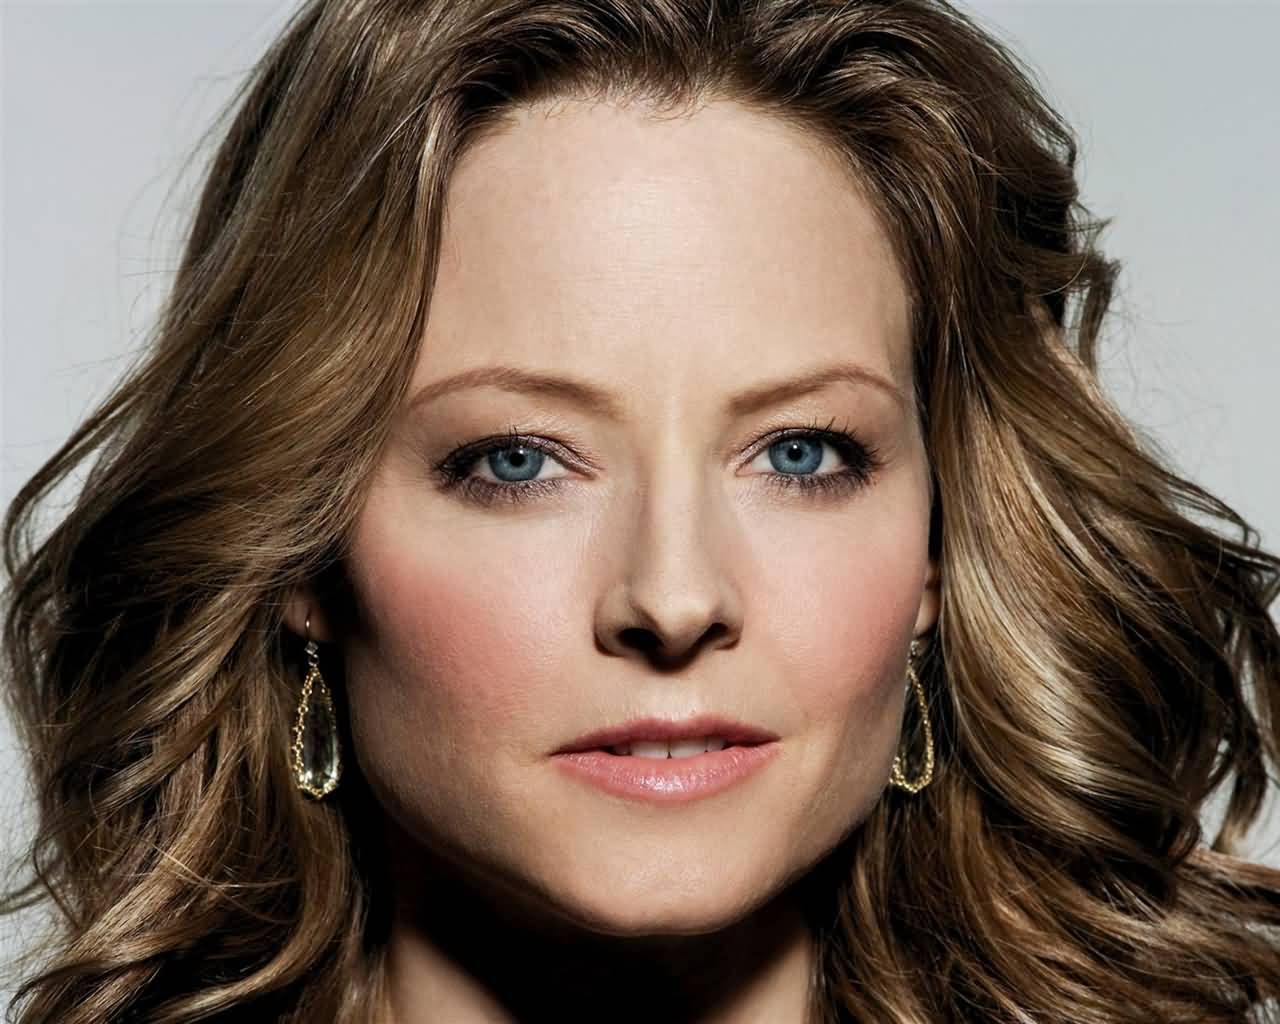 Jodie Foster Hot Jodie Foster Hot Jodie Foster Hot Jodie Foster Hot